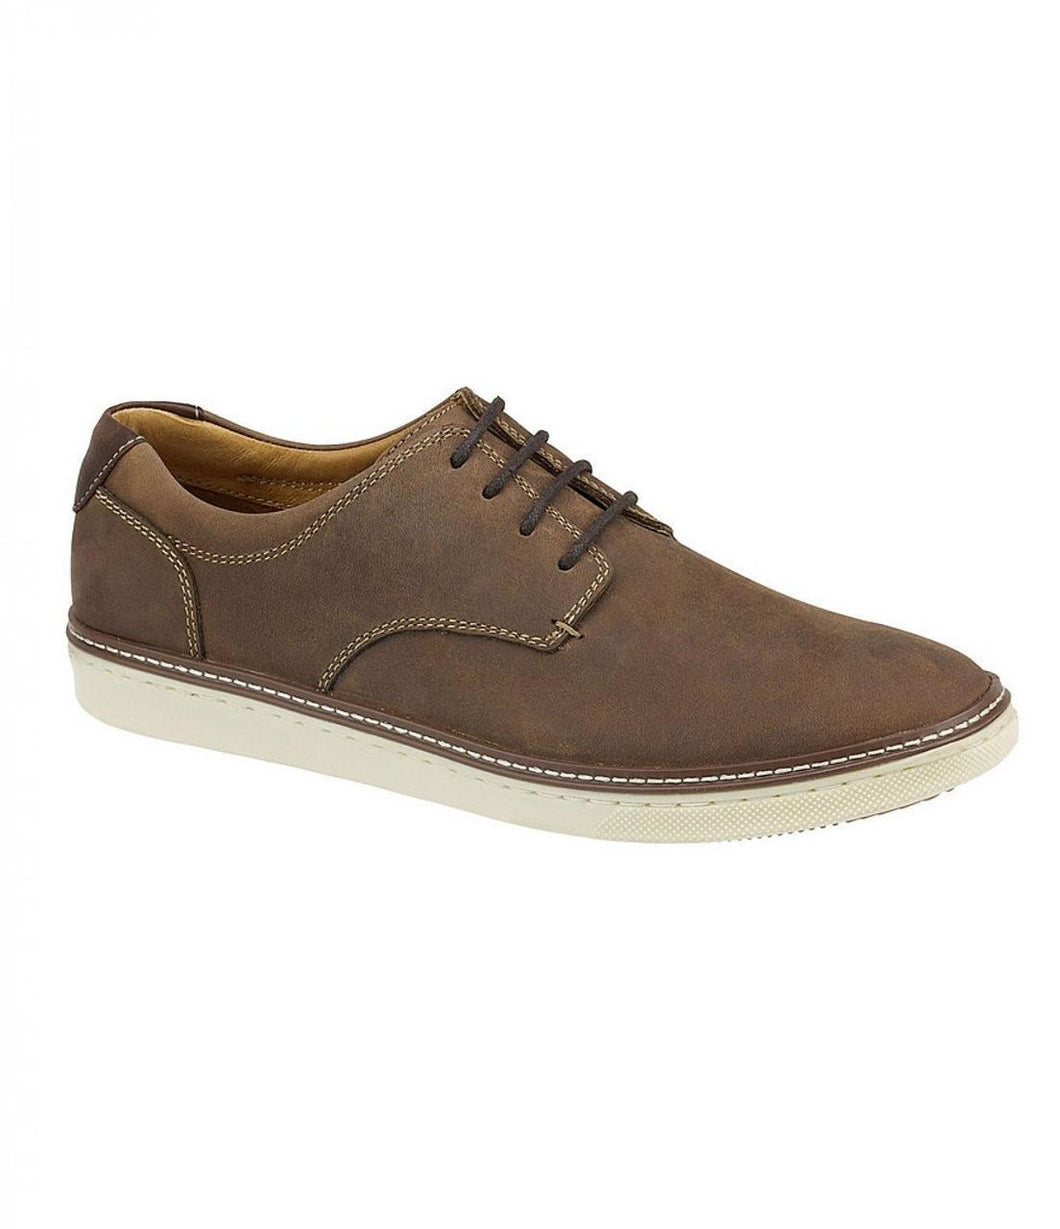 Men's Johnston & Murphy Mcguffey/Tan Shoe